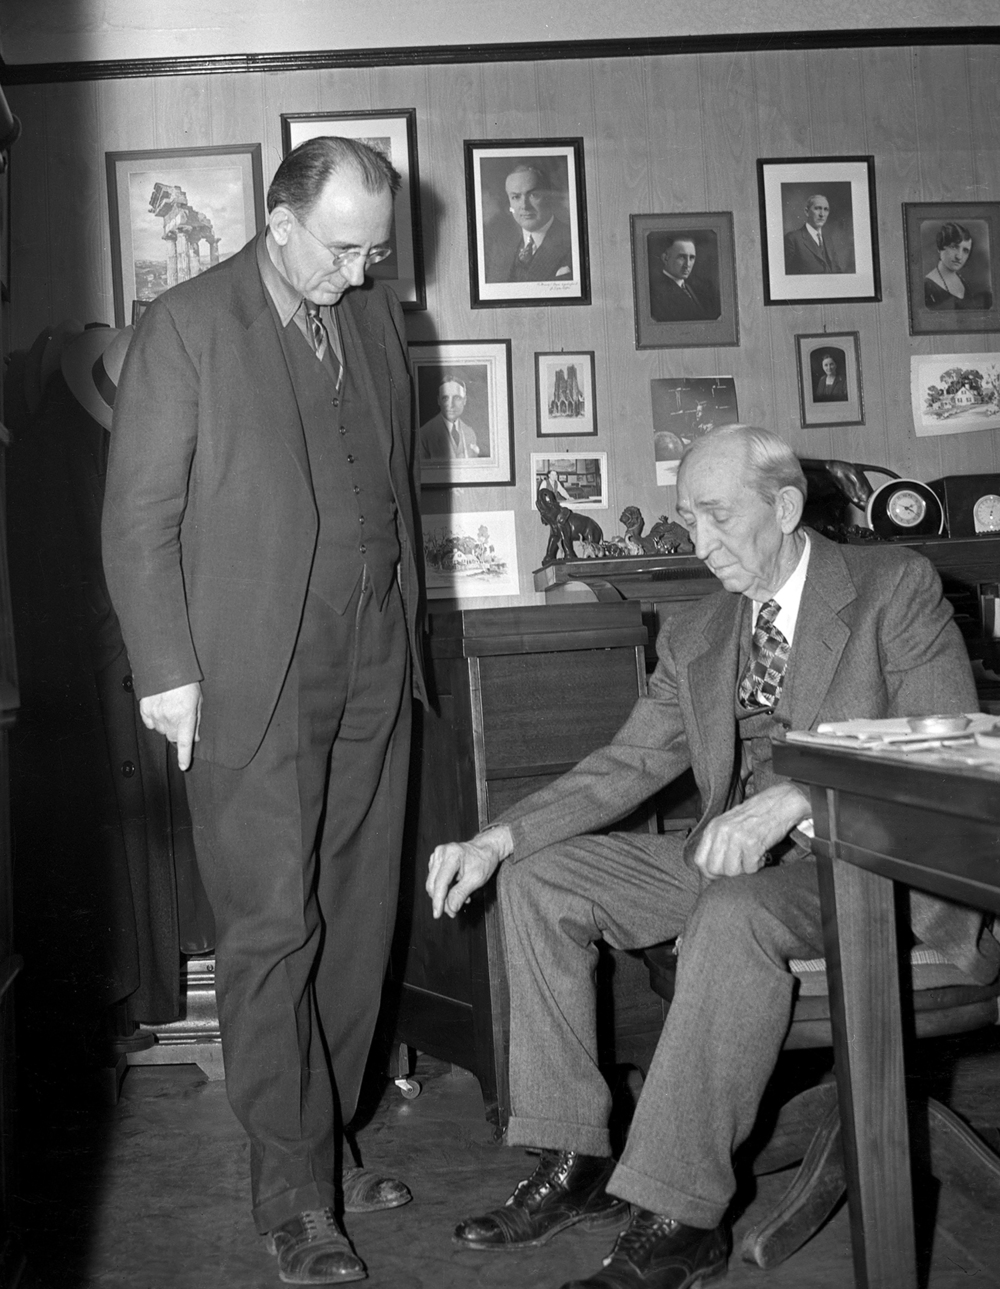 Murray S. Hanes and his father, S.J.Hanes, Feb. 7, 1945. Their office at 205 1/2 S. Sixth St. were in the office once used by Abraham Lincoln and John Logan as their law office between 1841-1844 and later by Lincoln and William Herndon. It's now the Lincoln-Herndon Law Office, a state historic site. Pub. ISJ Feb. 11, 1945, p. 14. File/The State Journal-Register